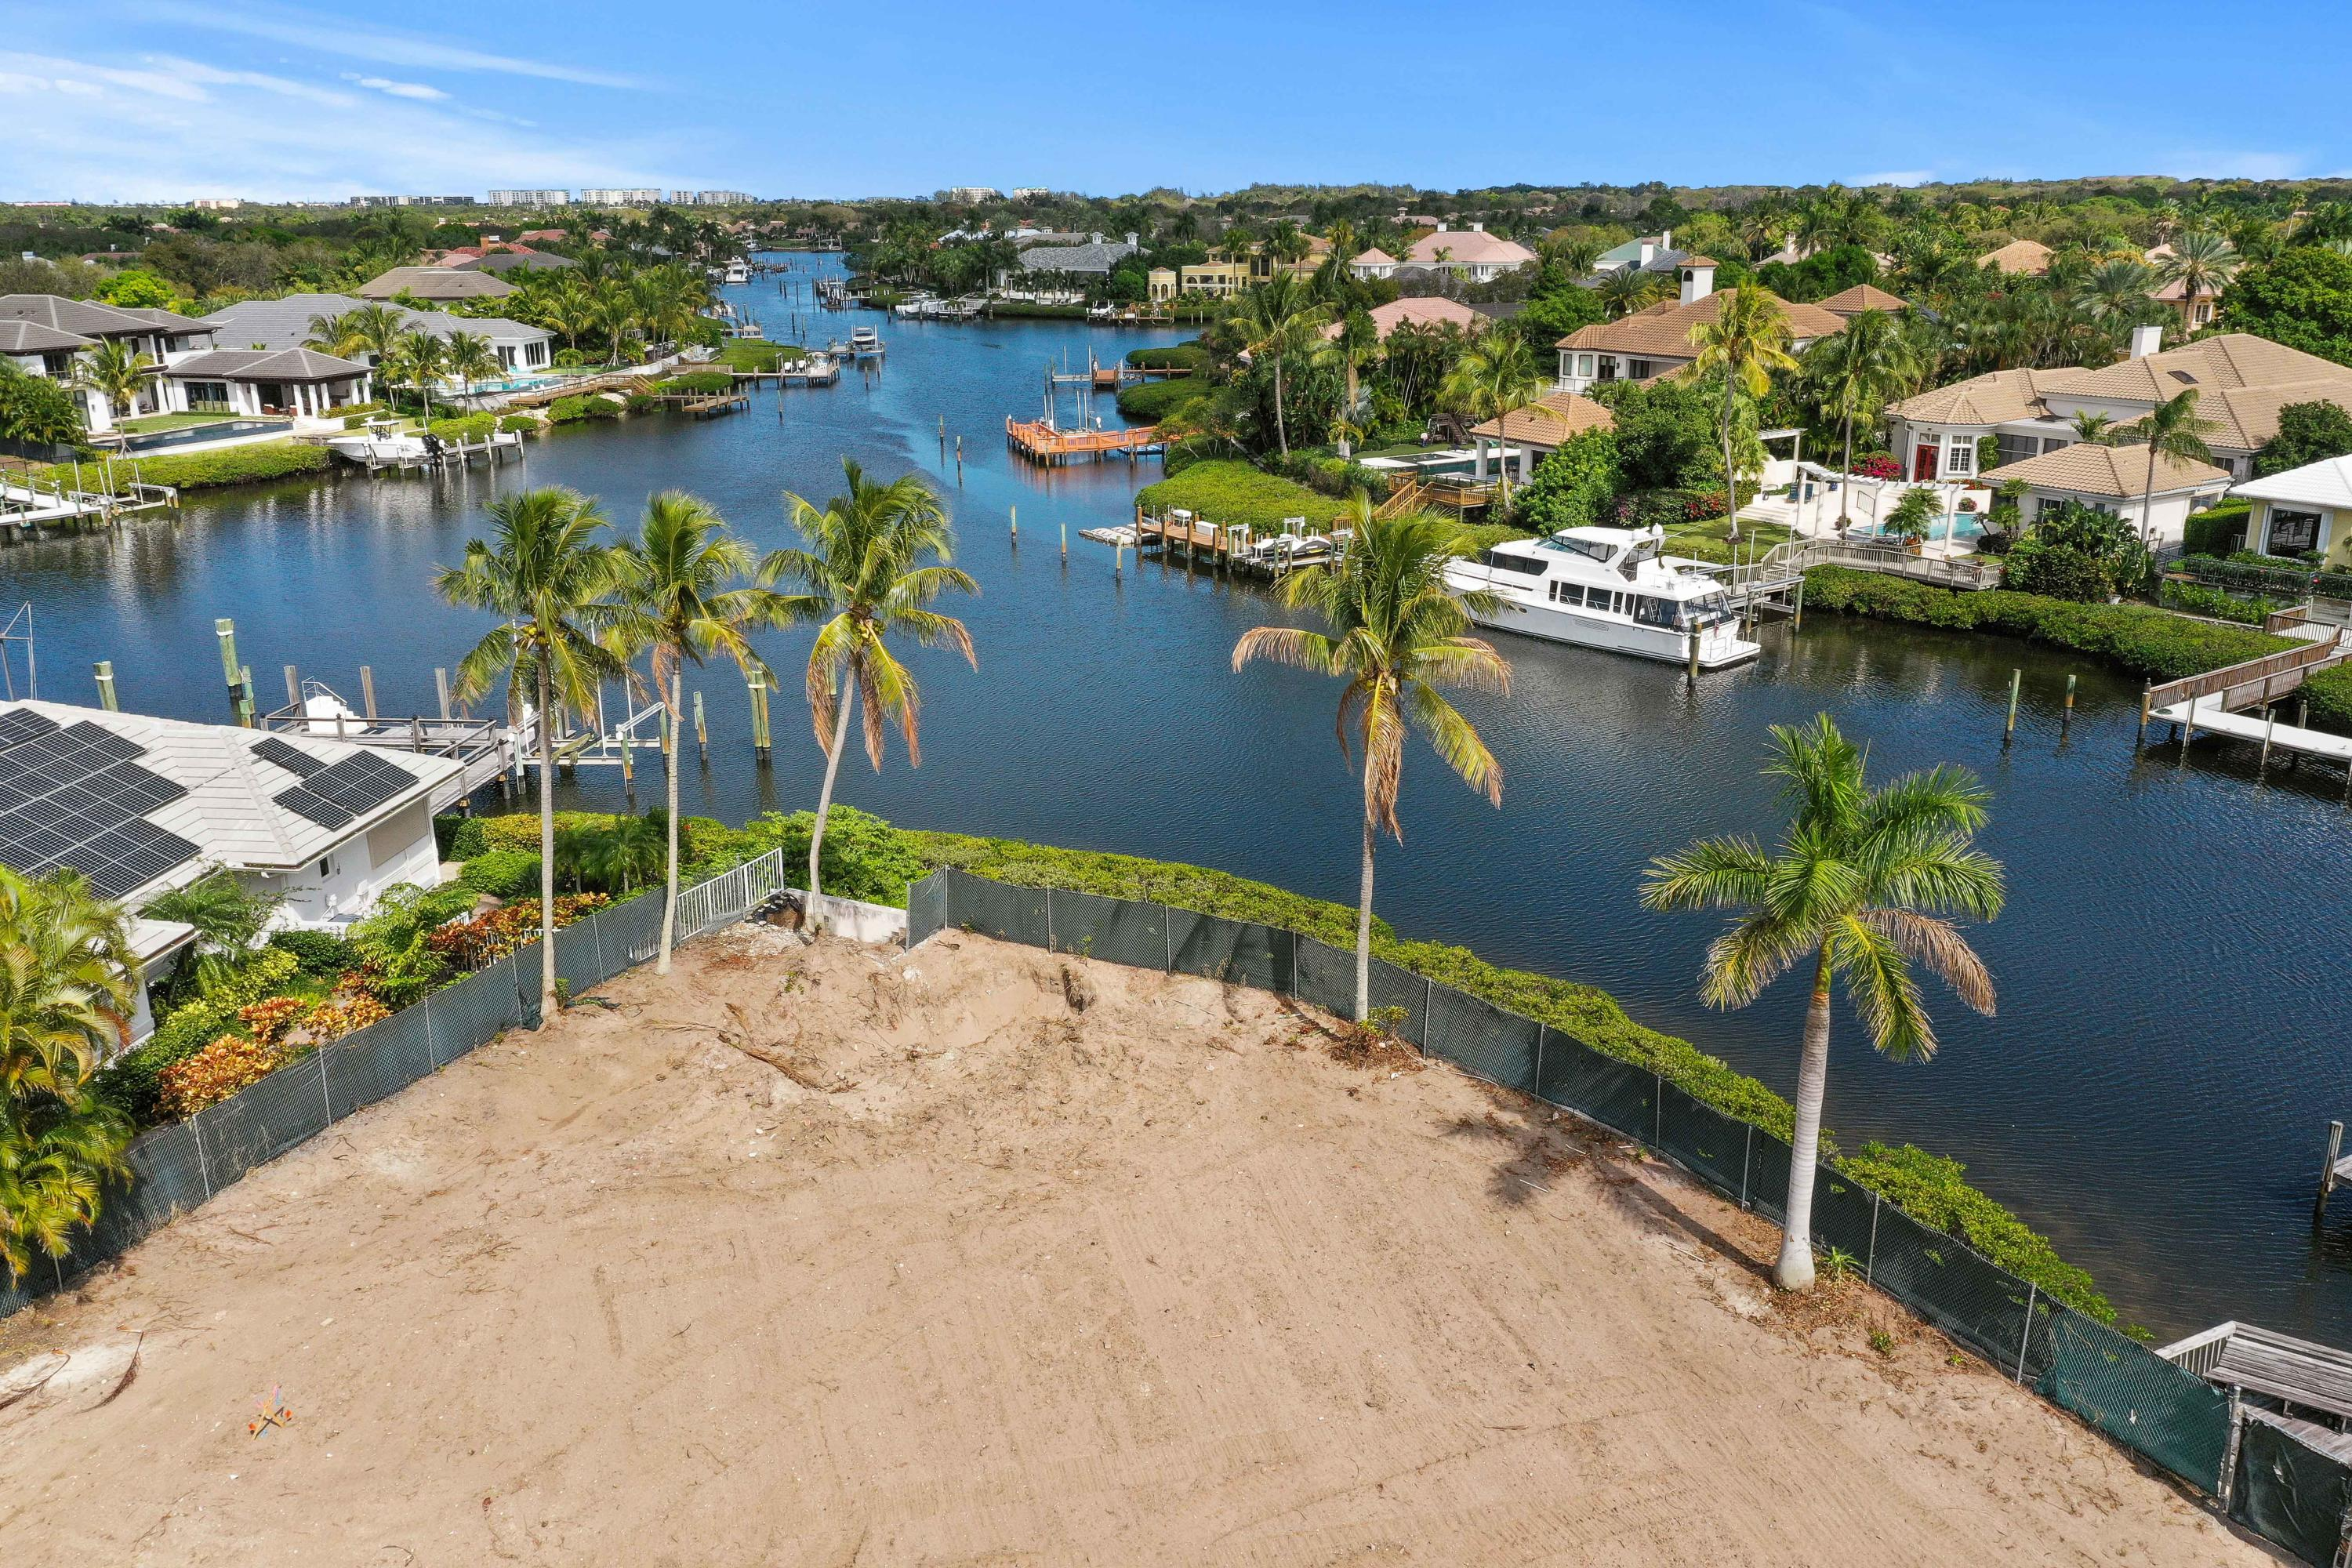 ADMIRALS COVE PROPERTY